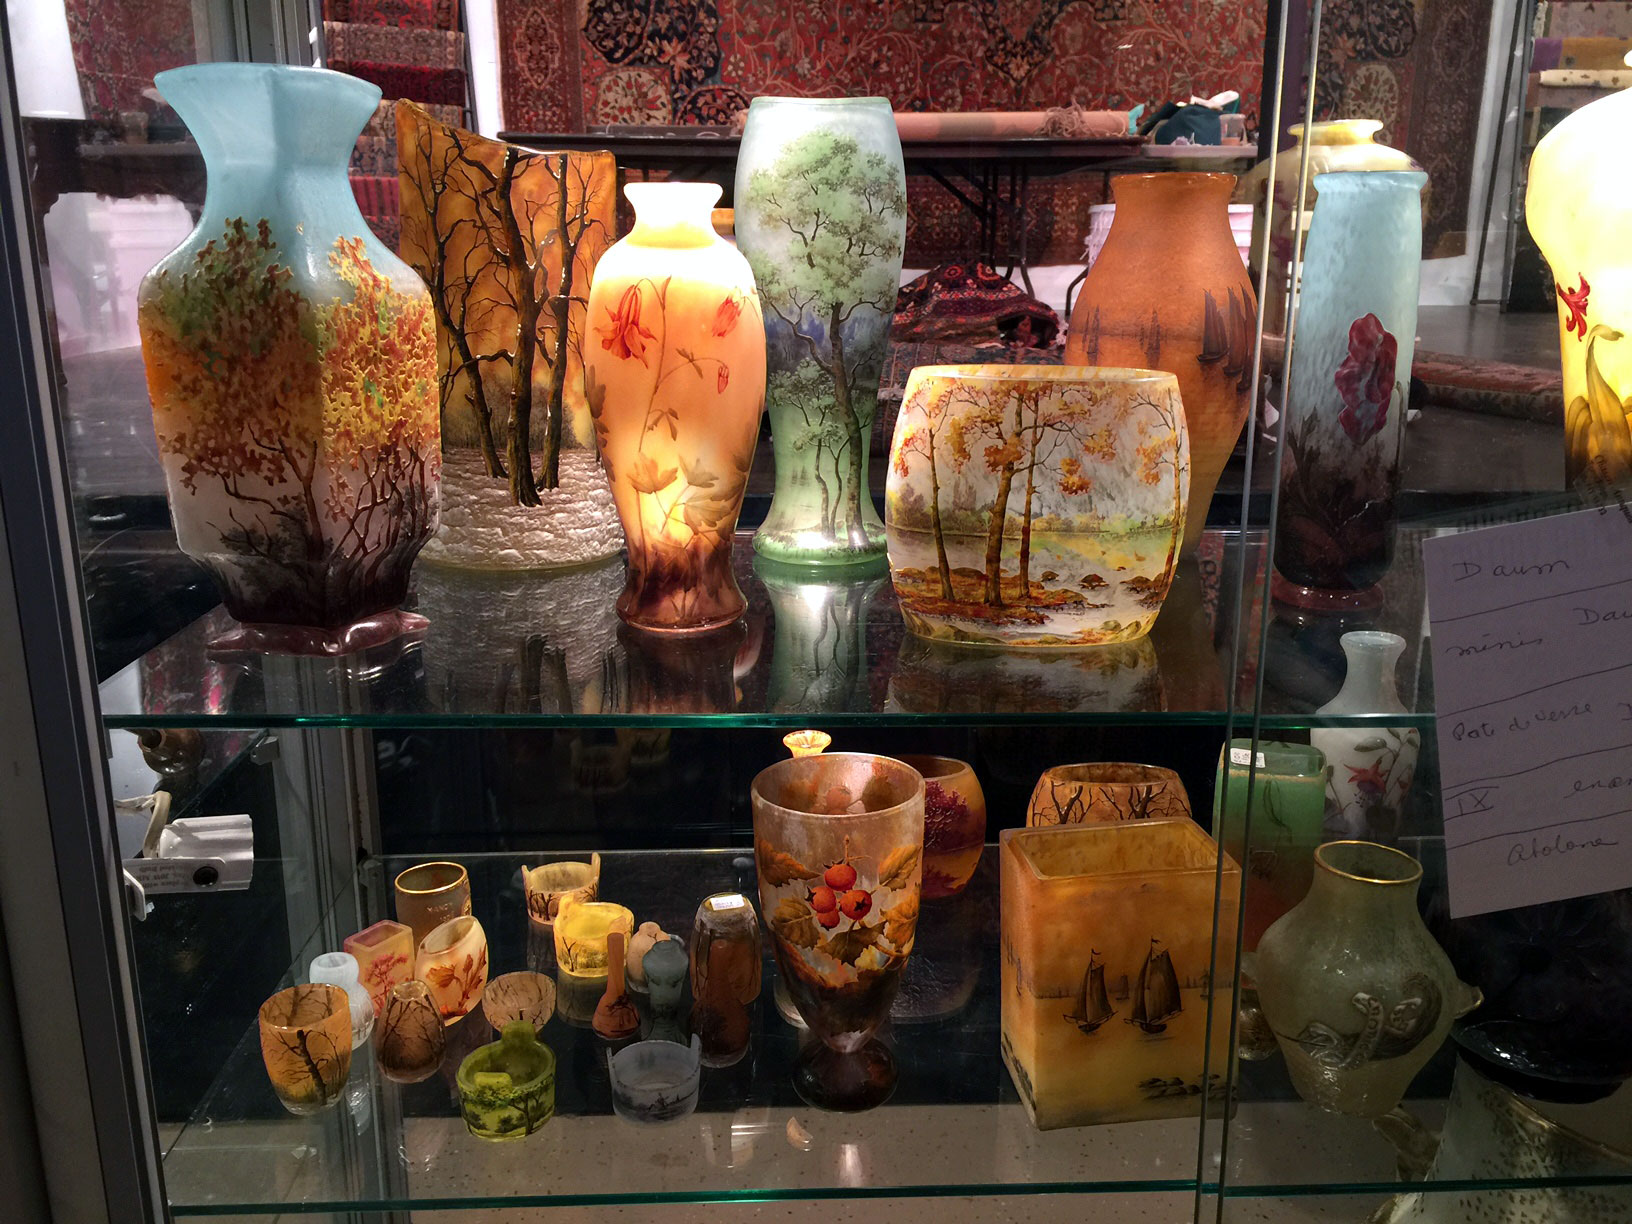 The Daum Nancy glass isn't all on the shelf yet, nor arranged, but here's a preview